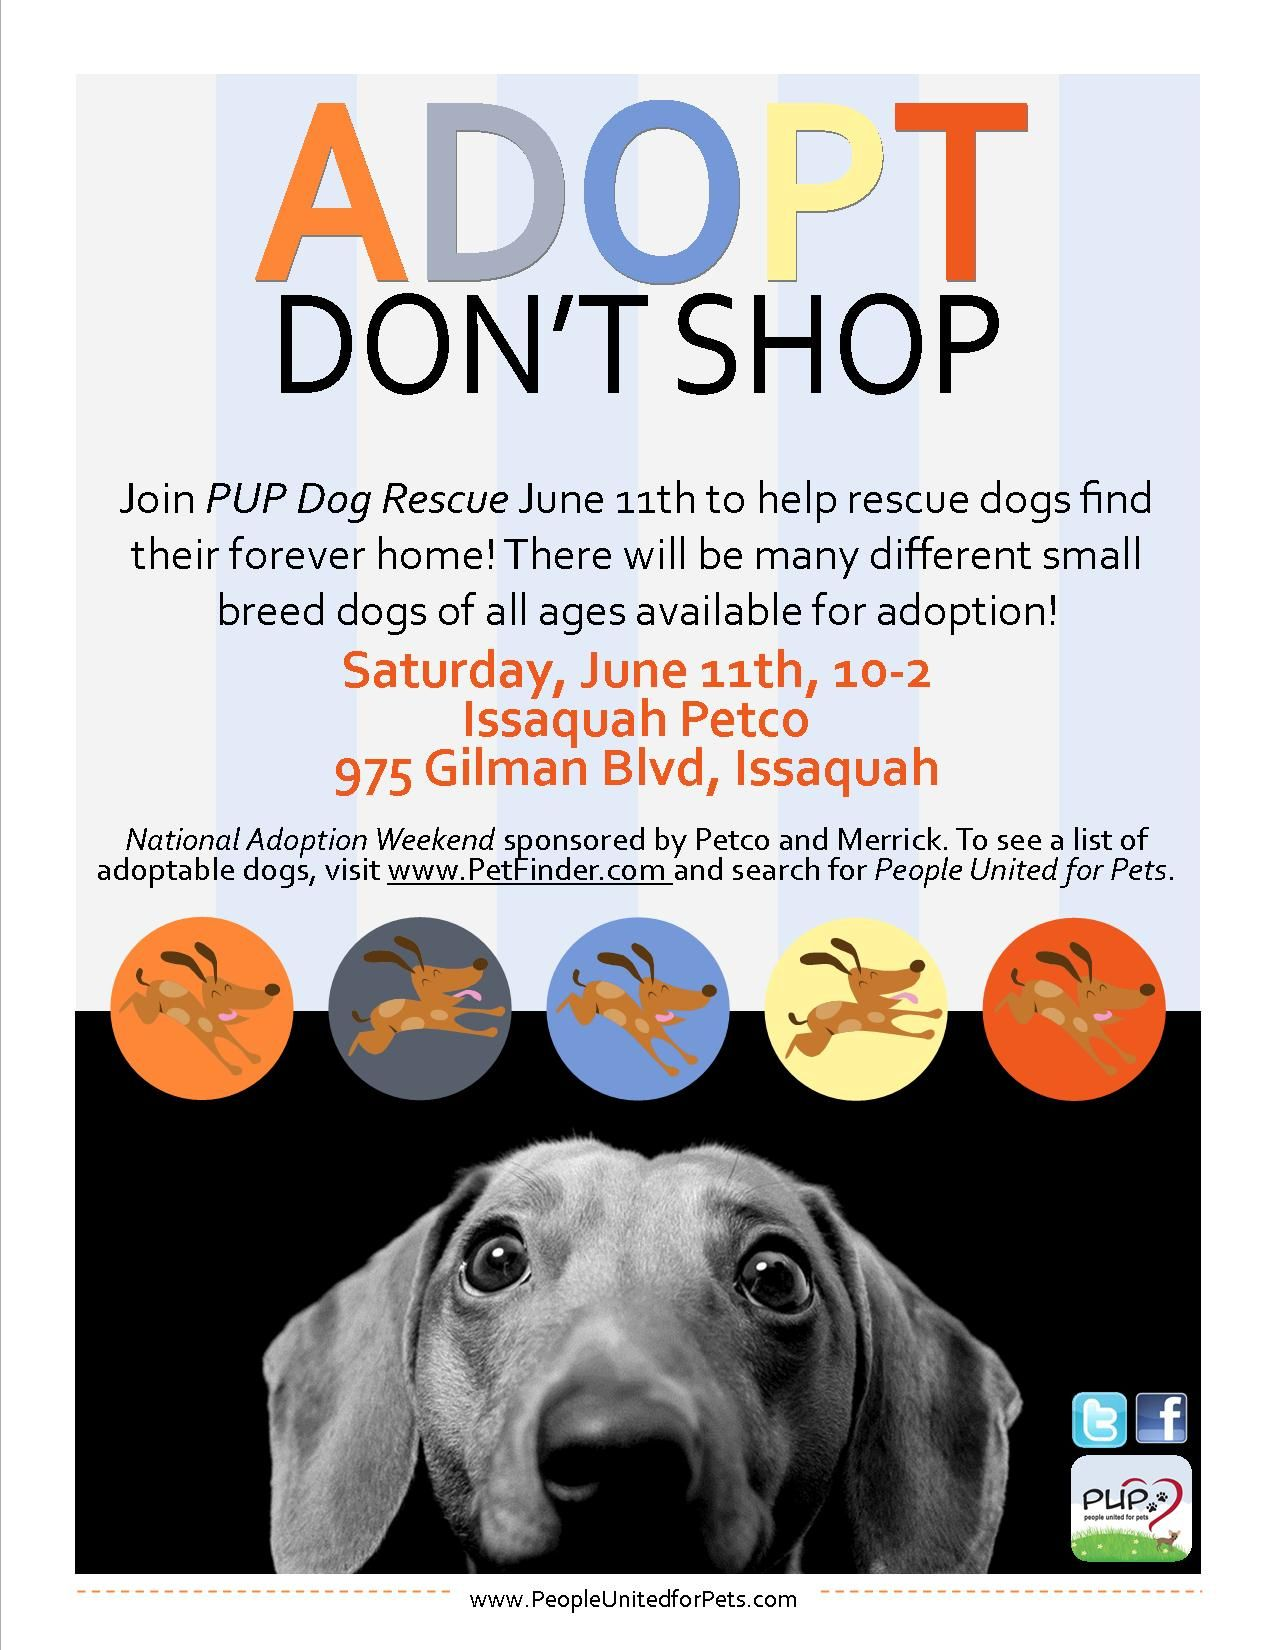 Pup Dog Rescue Flyers Dog Adoption Pet Event Rescue Dogs